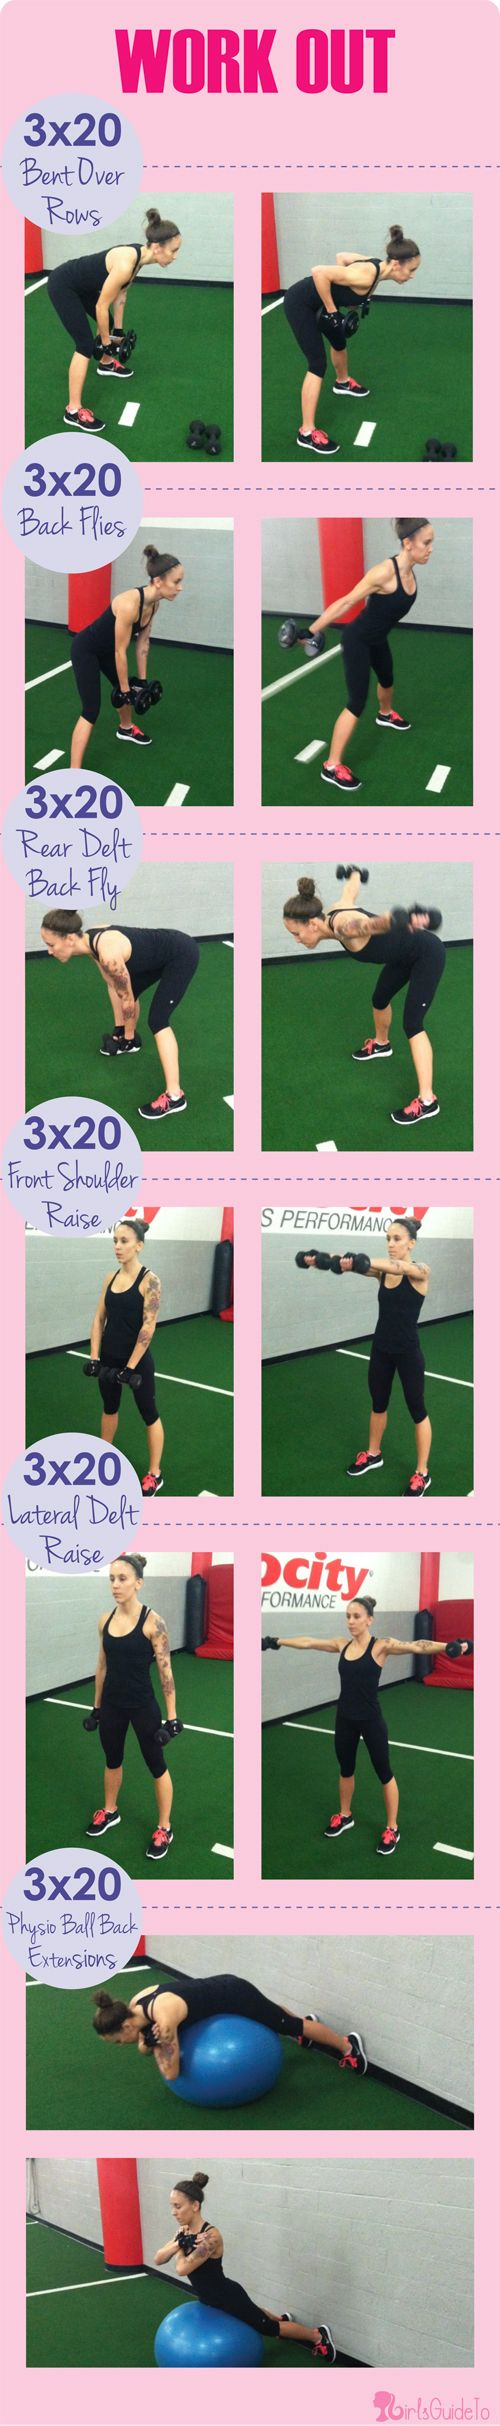 Workout Wednesday: Stand Up Straight Forever!   GirlsGuideTo